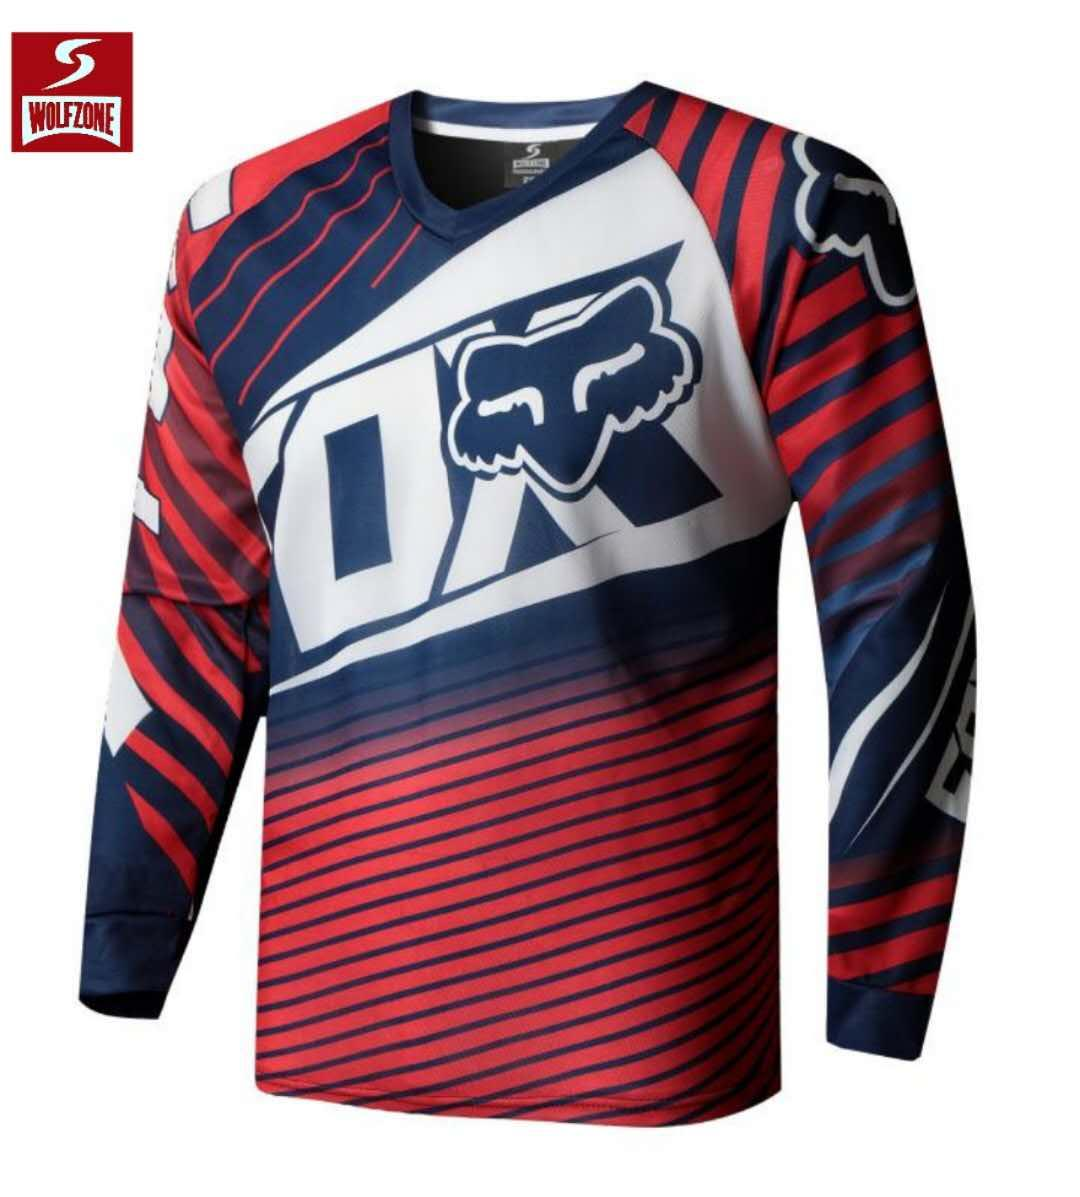 Wolf Zone Spandex Fox Longsleeve Men s Sportswear Quick DryFortress Cycling  Mountain Bike Motocross Motorcycle MTB 5fbf487f0